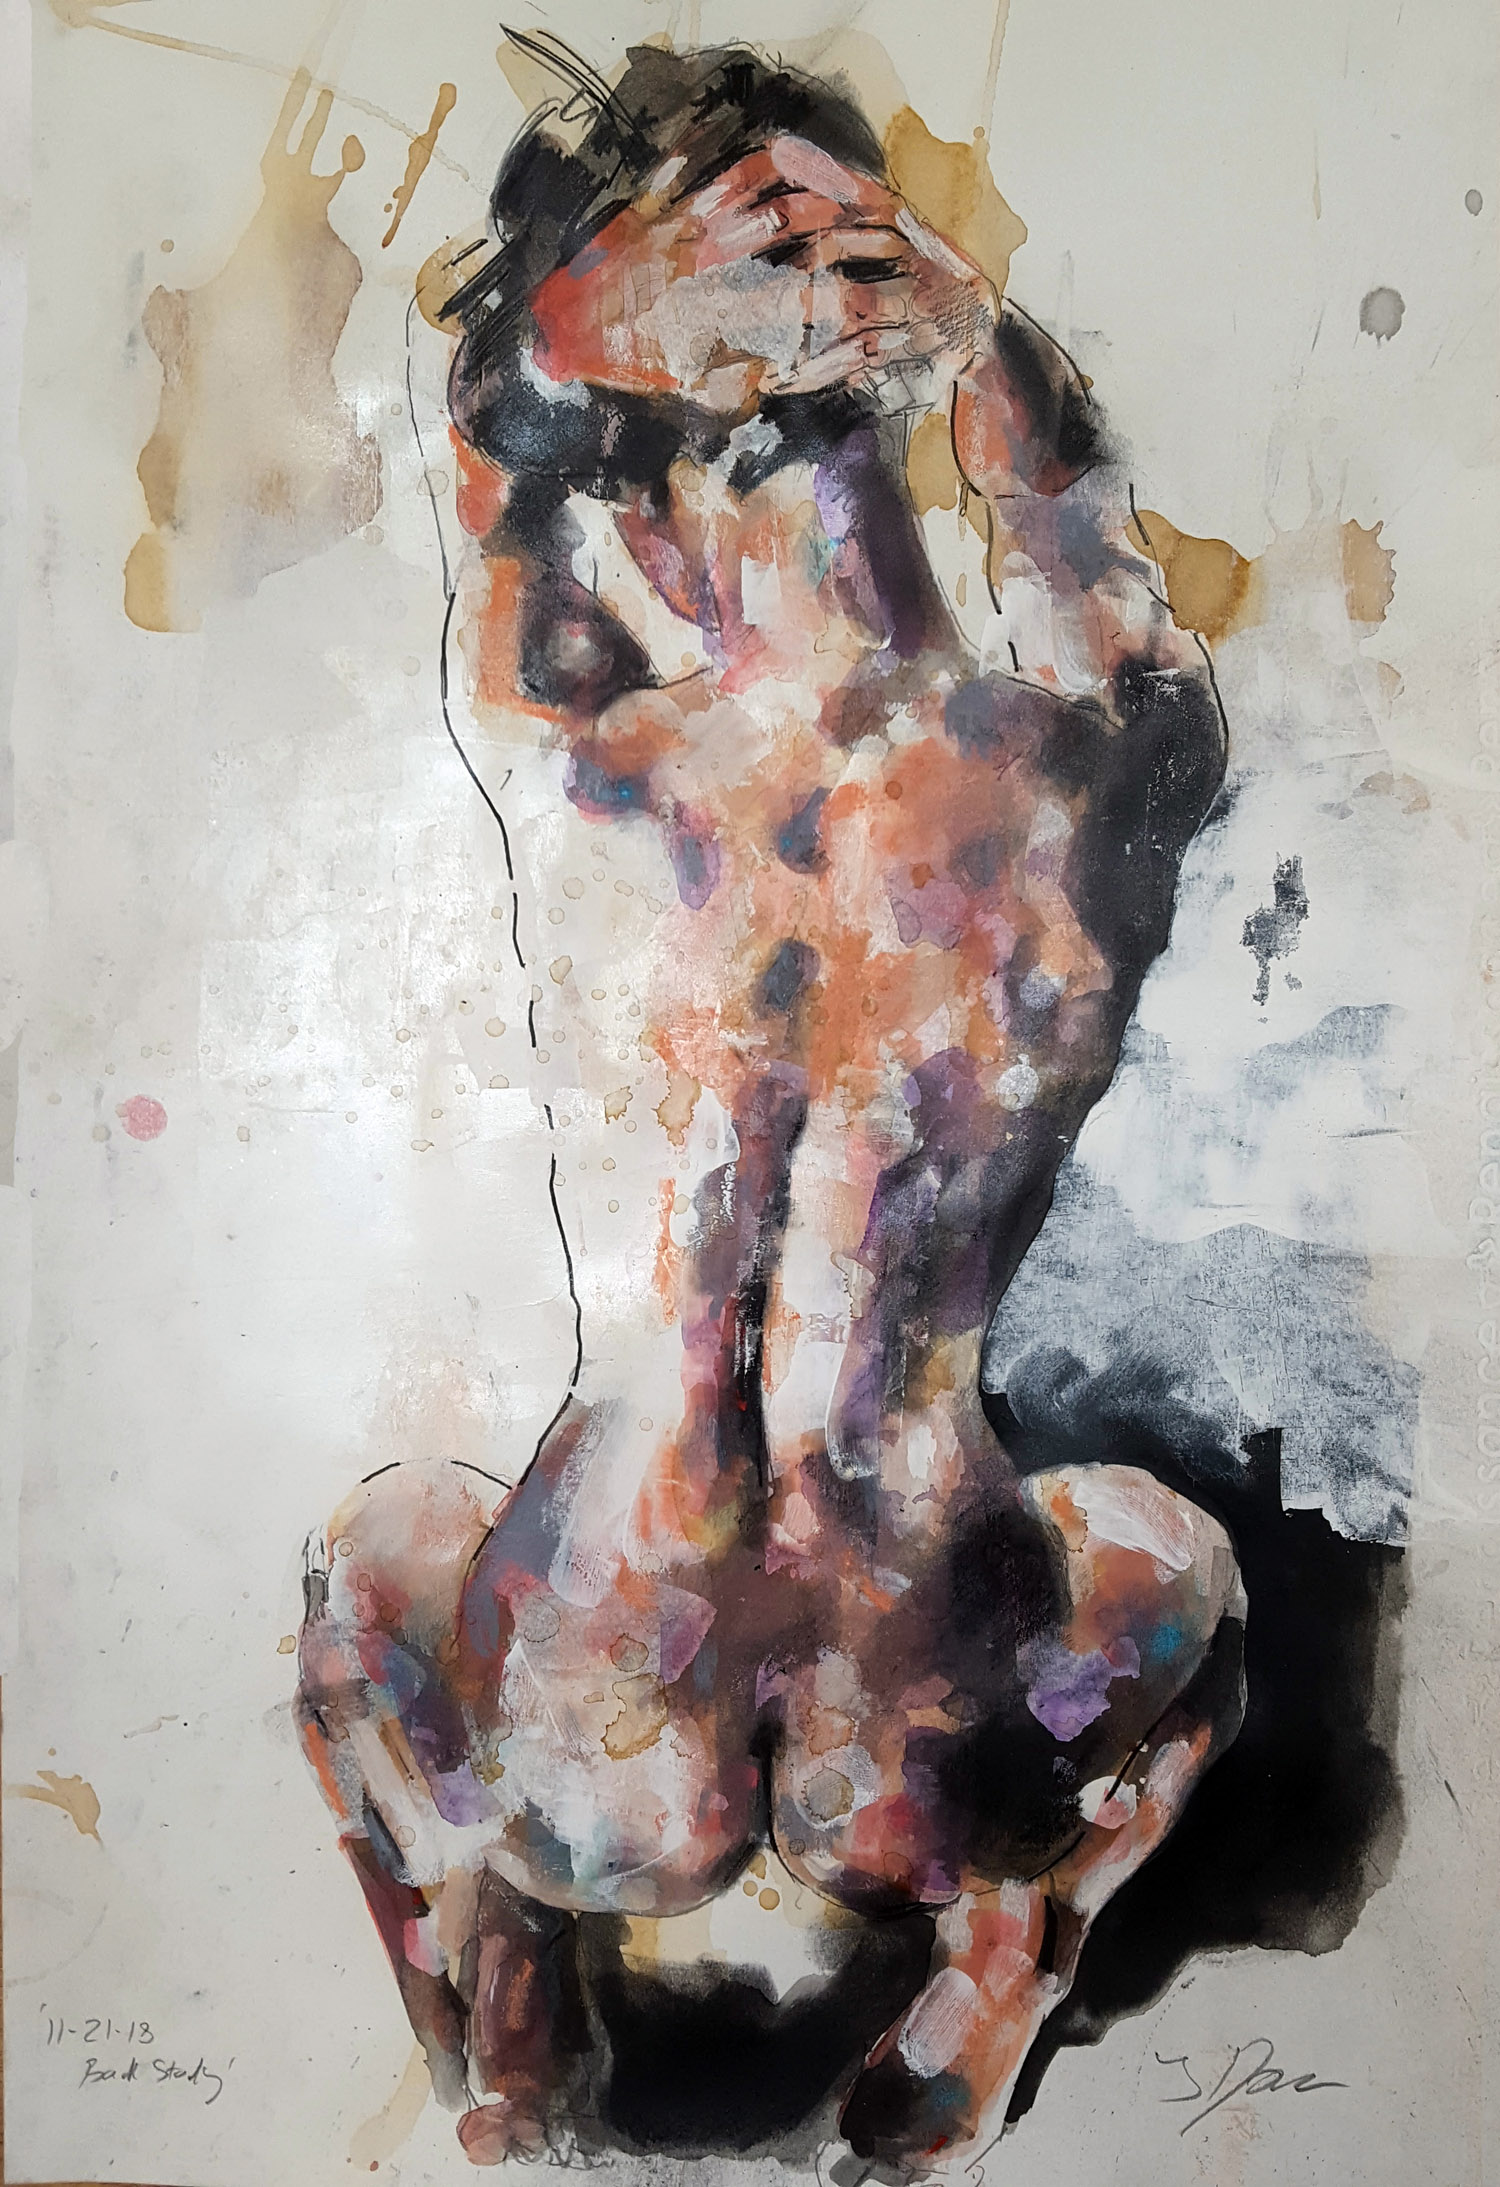 11-21-18 back study, mixedmedia on paper, 56x38cm